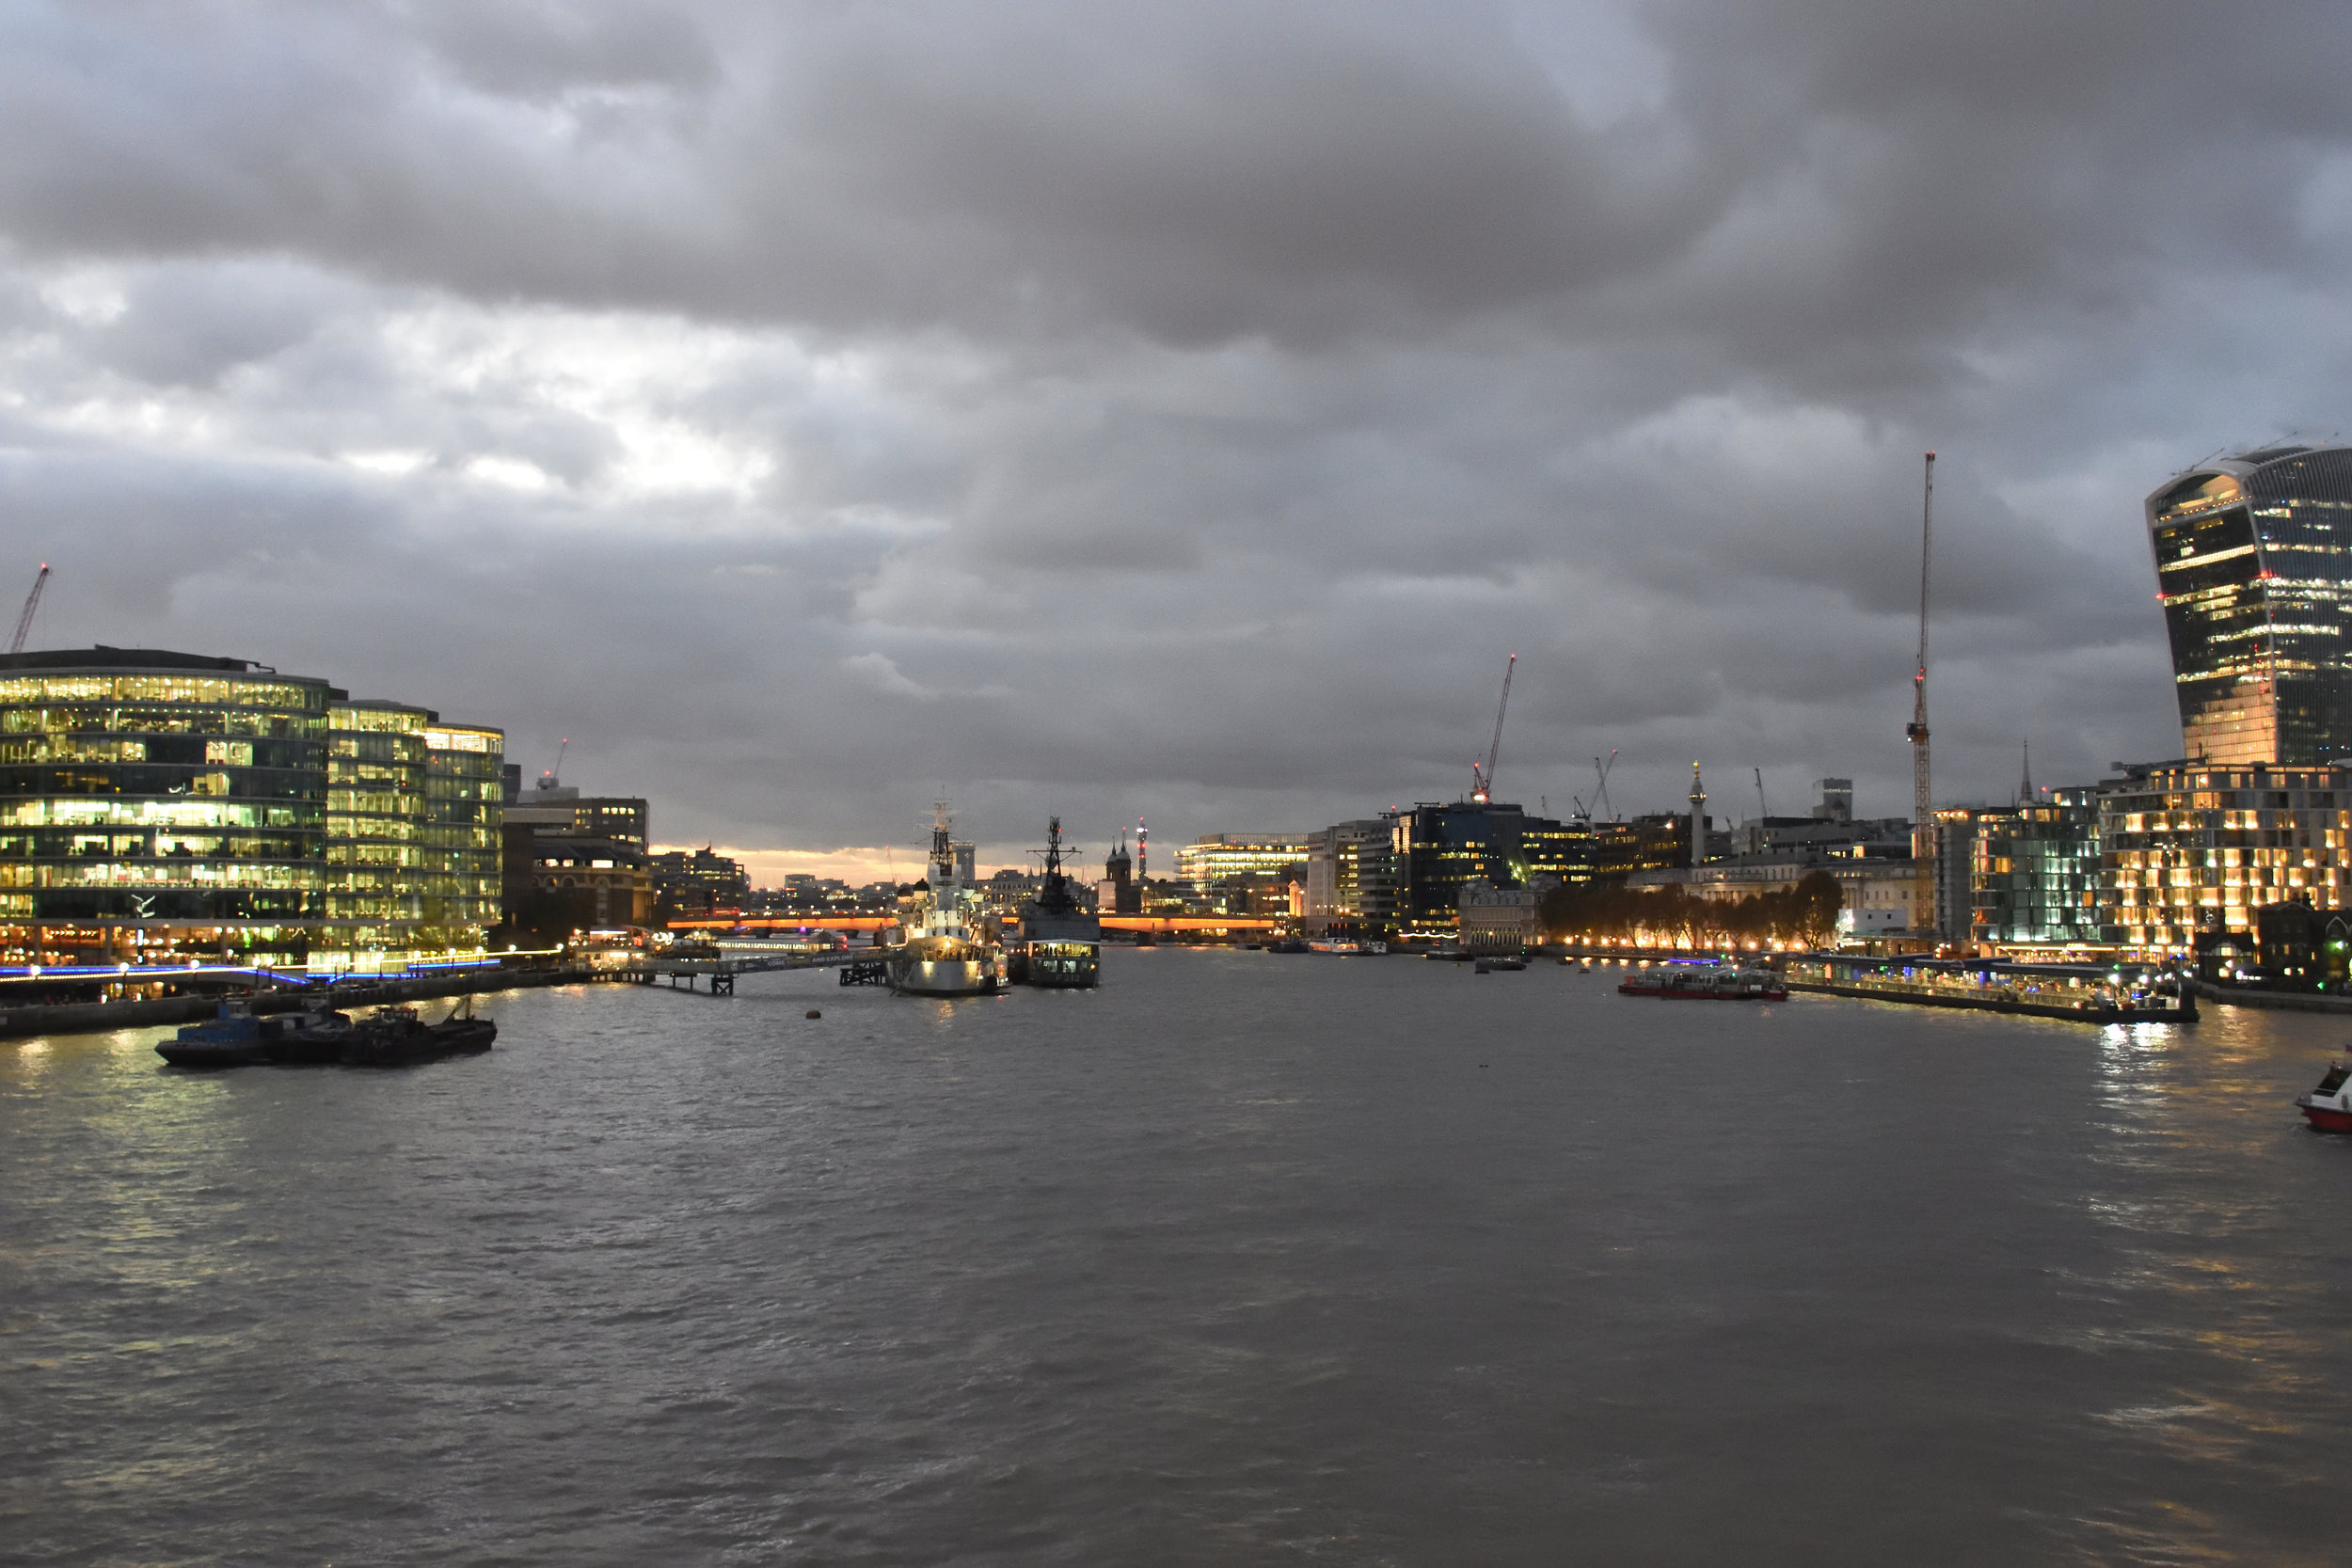 The Thames, London 2016